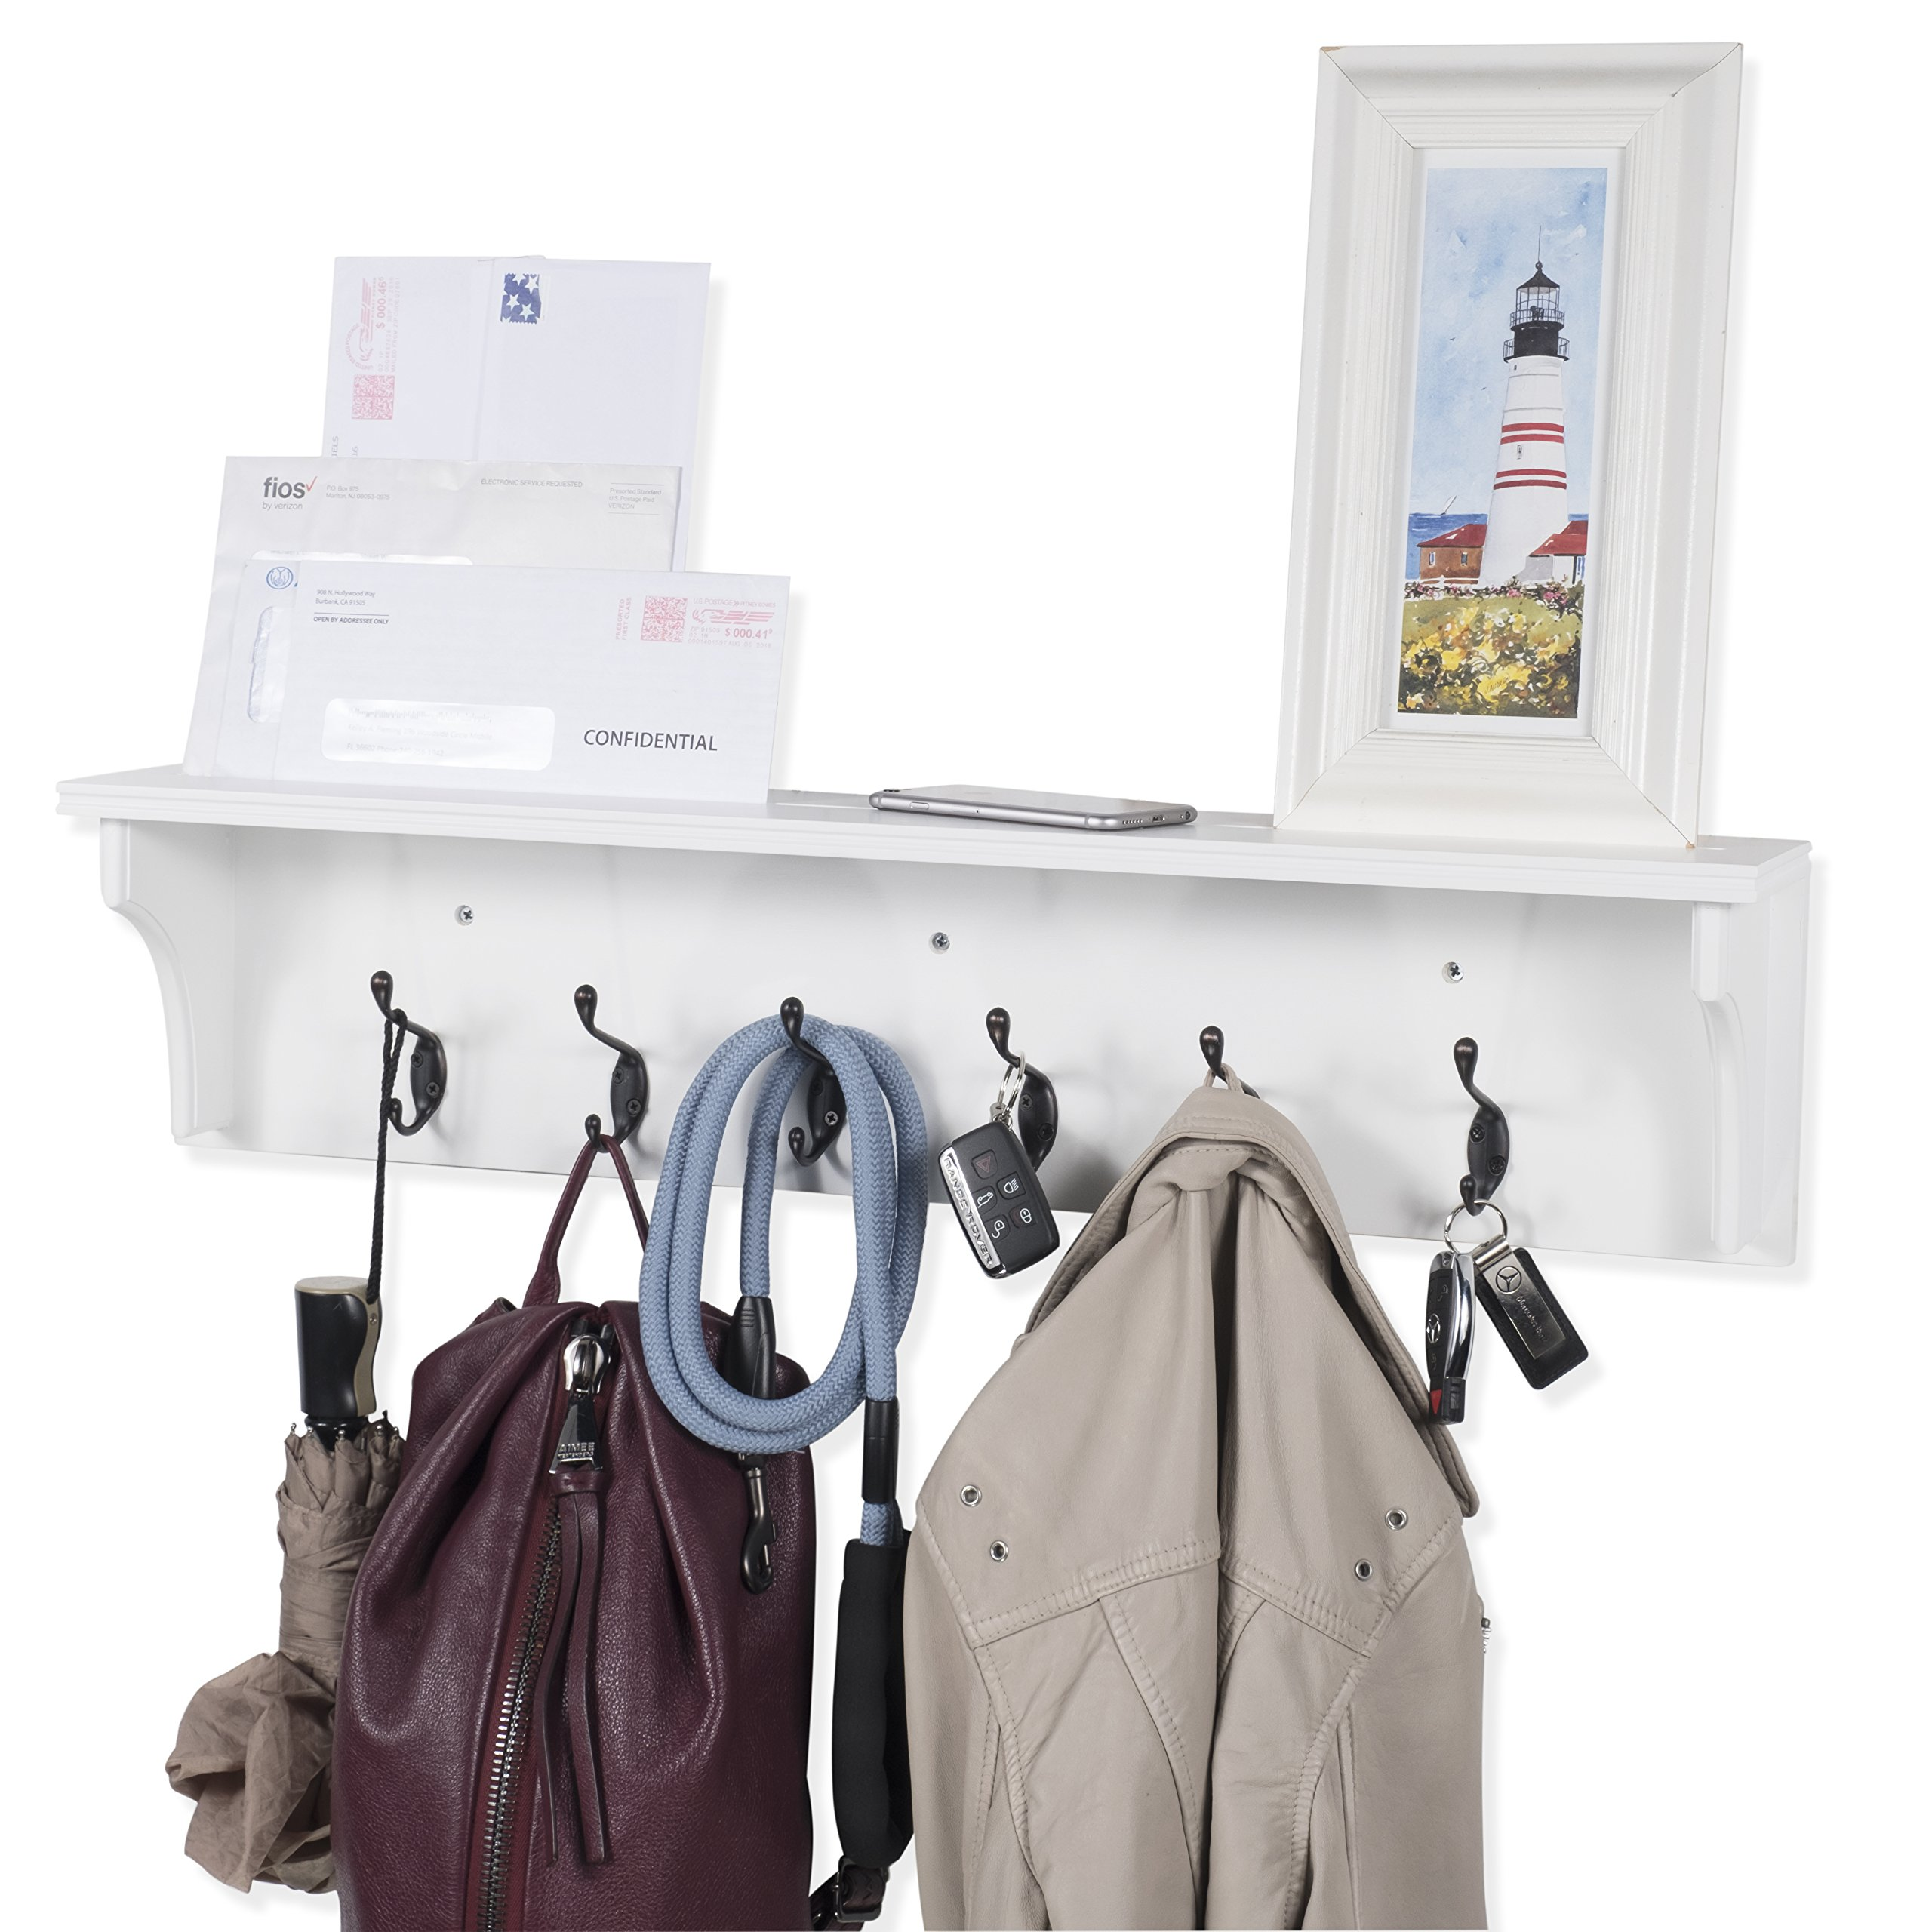 Solid Wood Entryway Organization Wall Mountable 30 Inch Coat Rack with 6 Hooks Walnut (White)